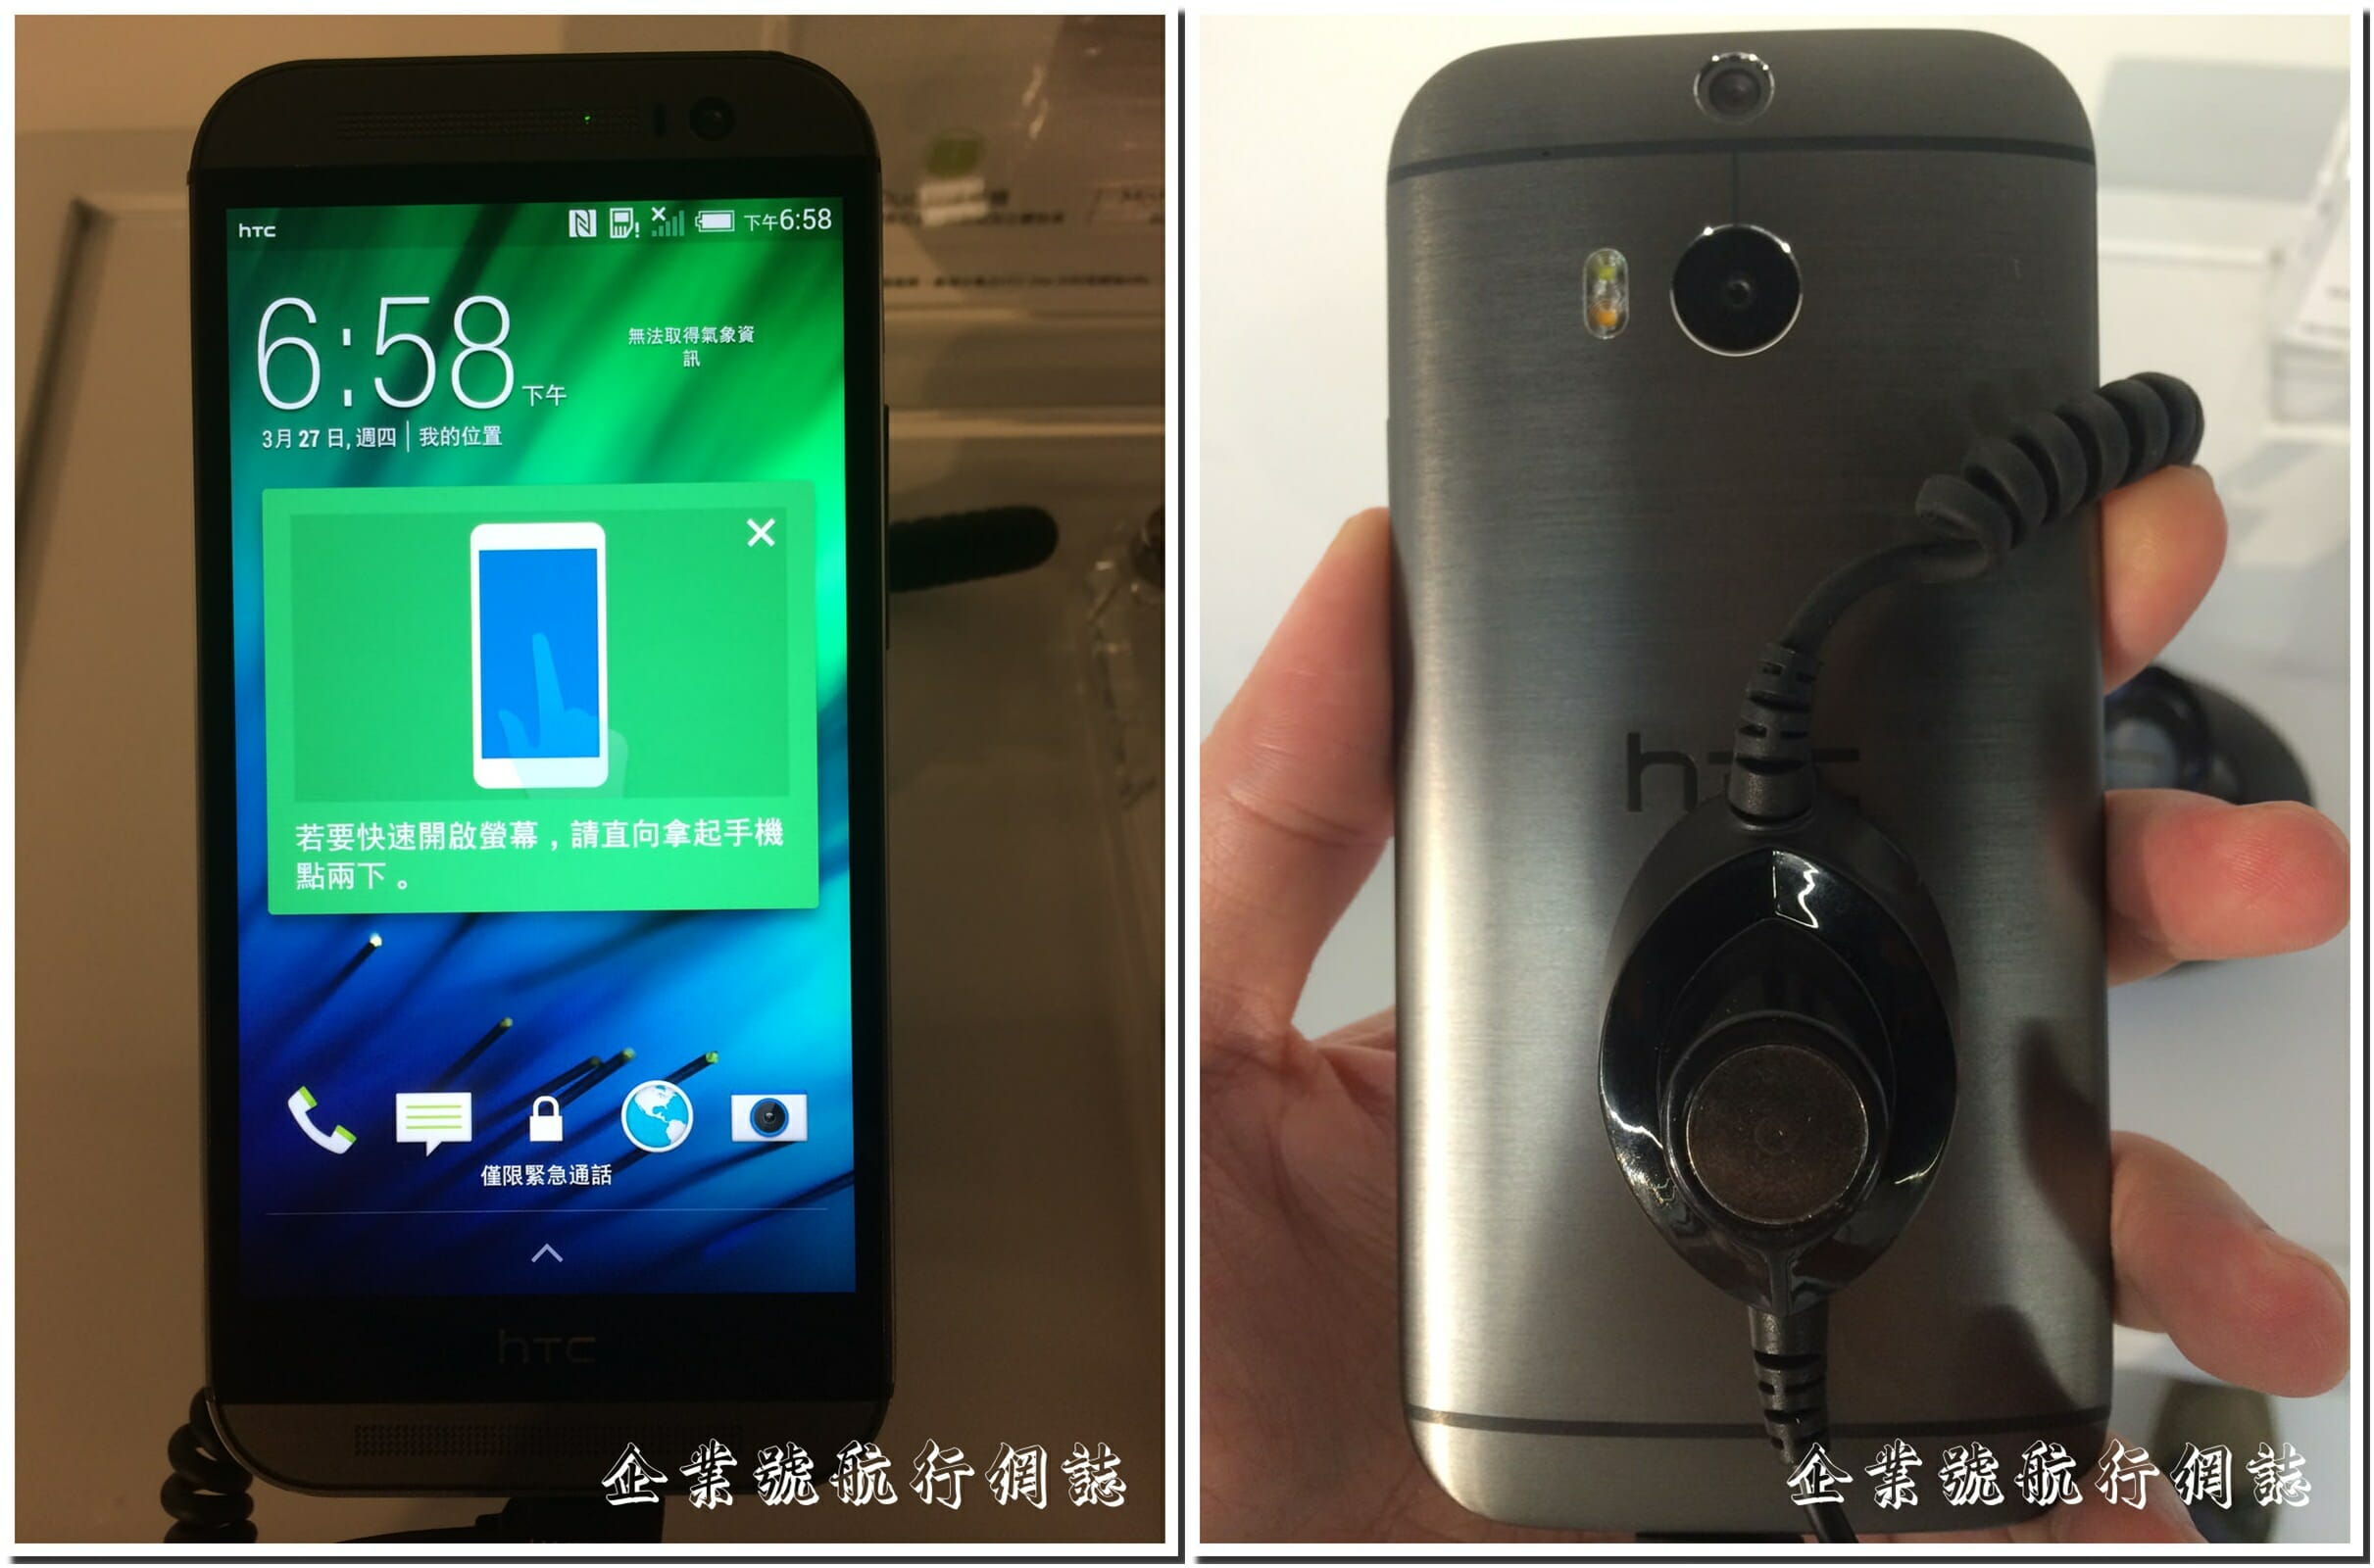 HTC One M8 front and back